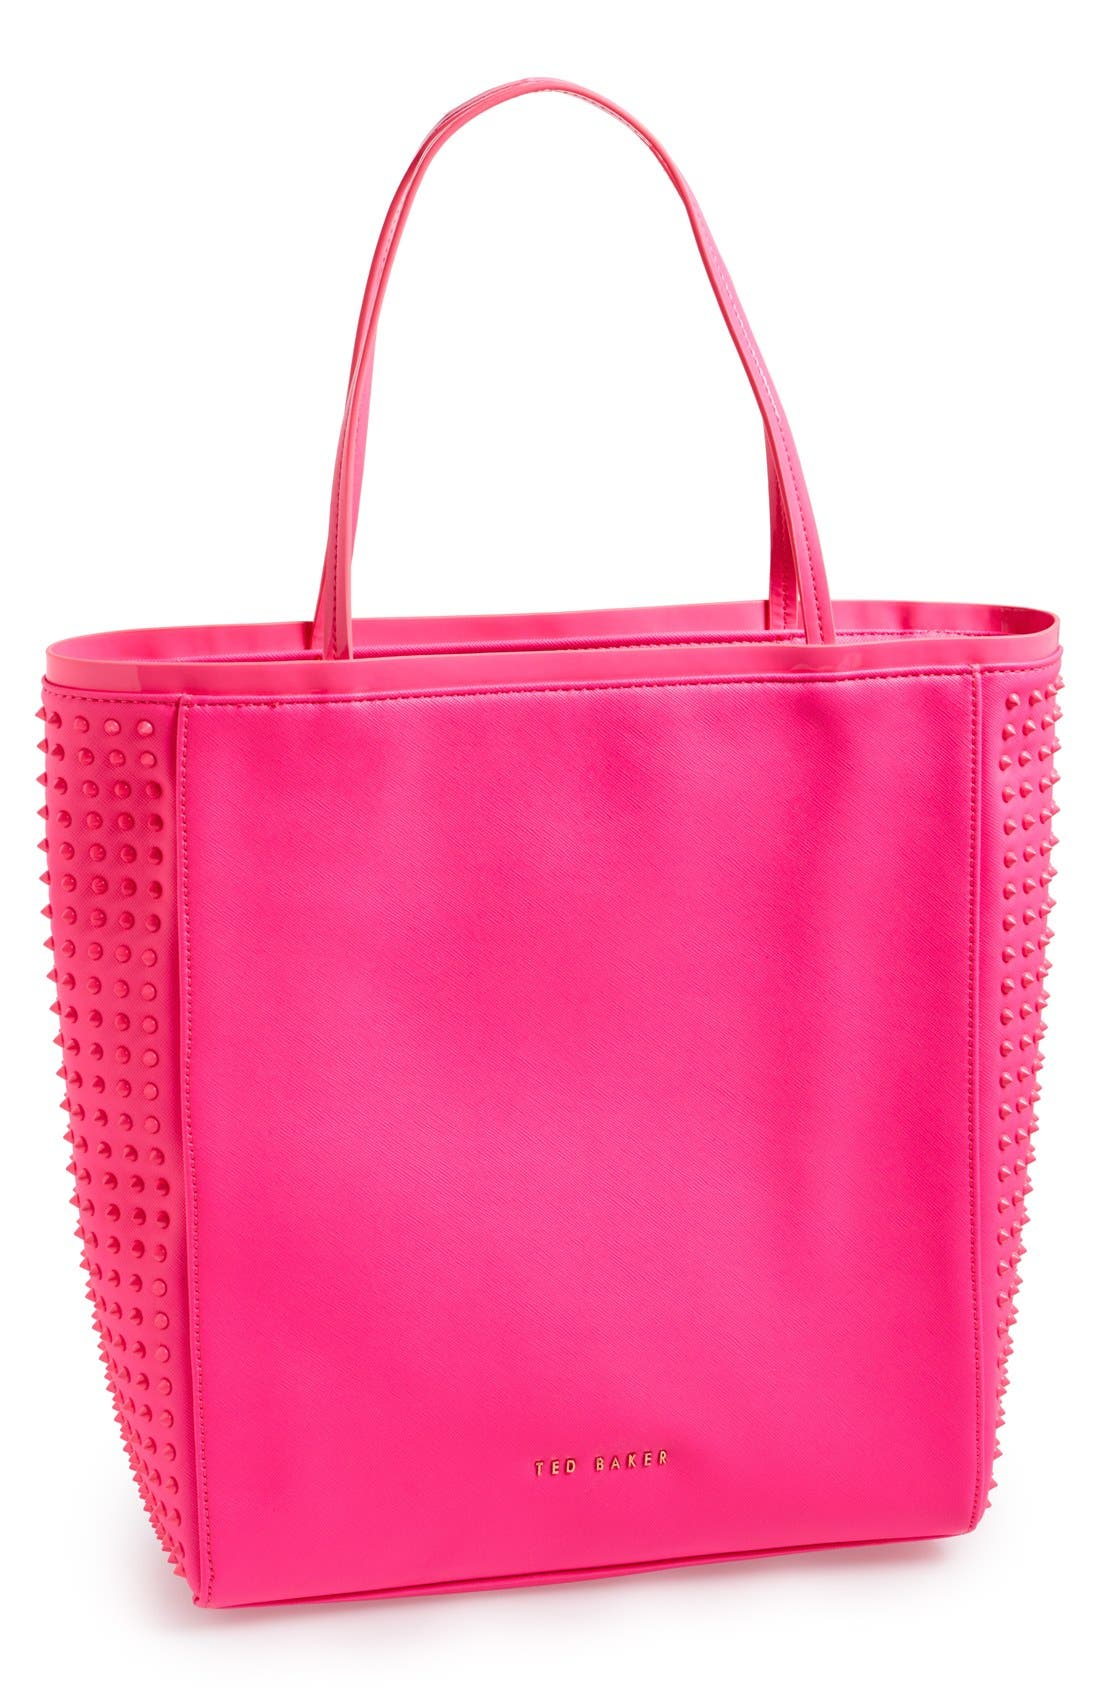 Alternate Image 1 Selected - Ted Baker London 'Studded Crosshatch' Tote